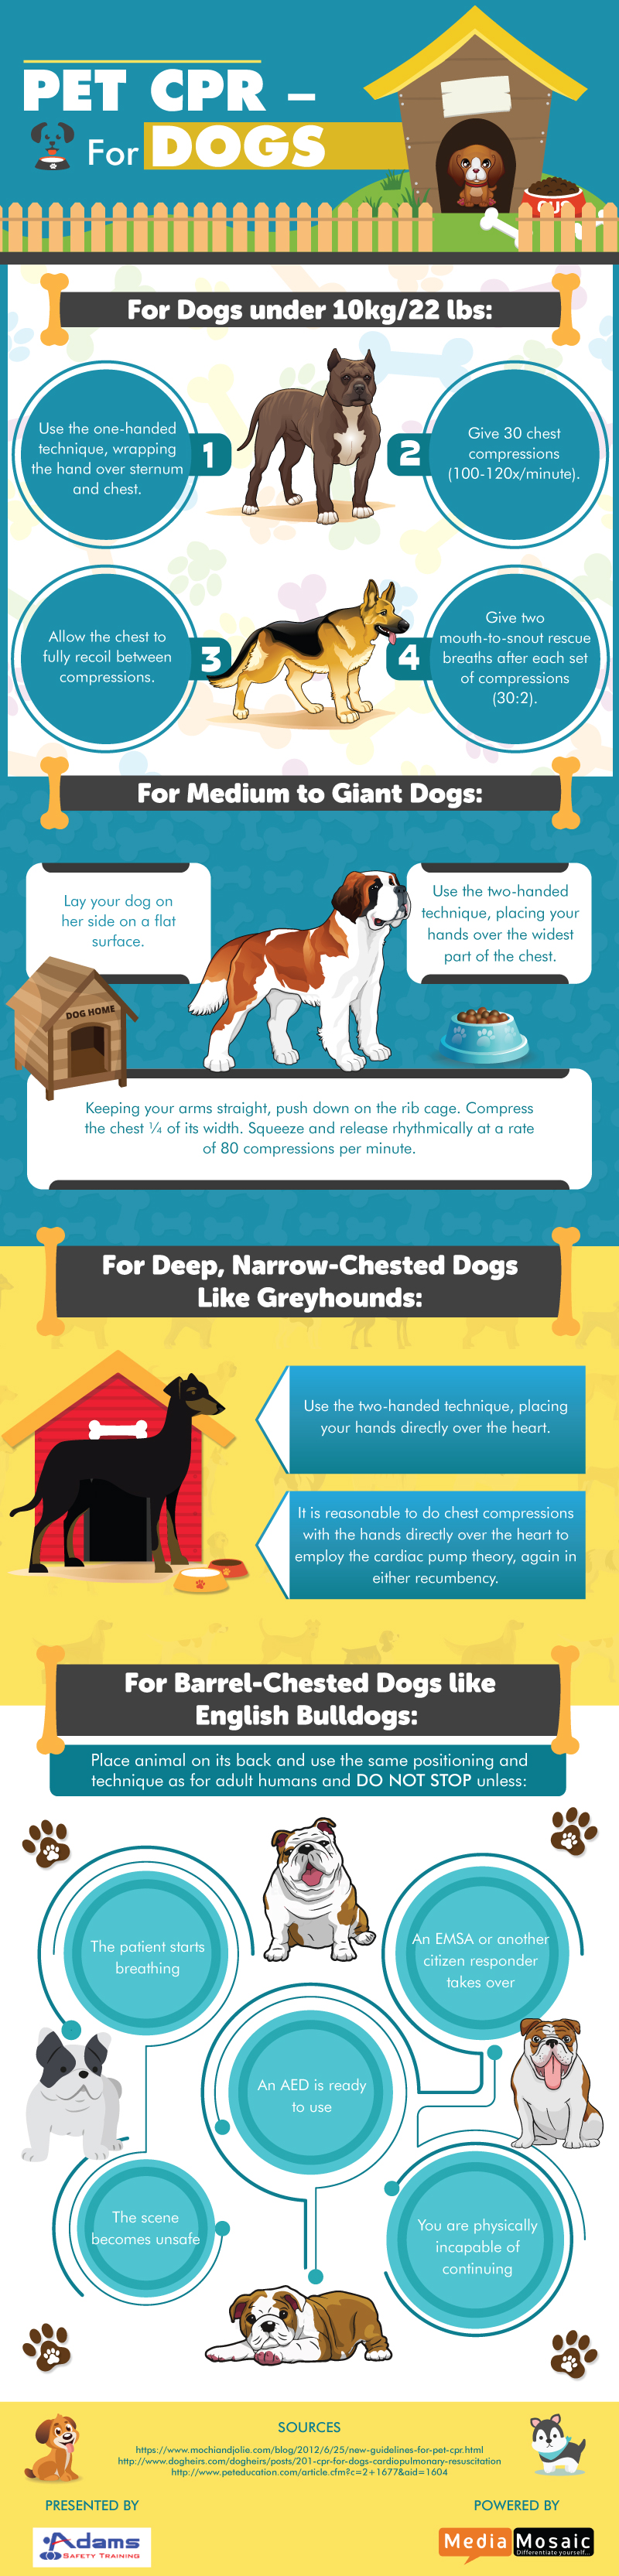 Pet-CPR-for-dogs.jpg?%20